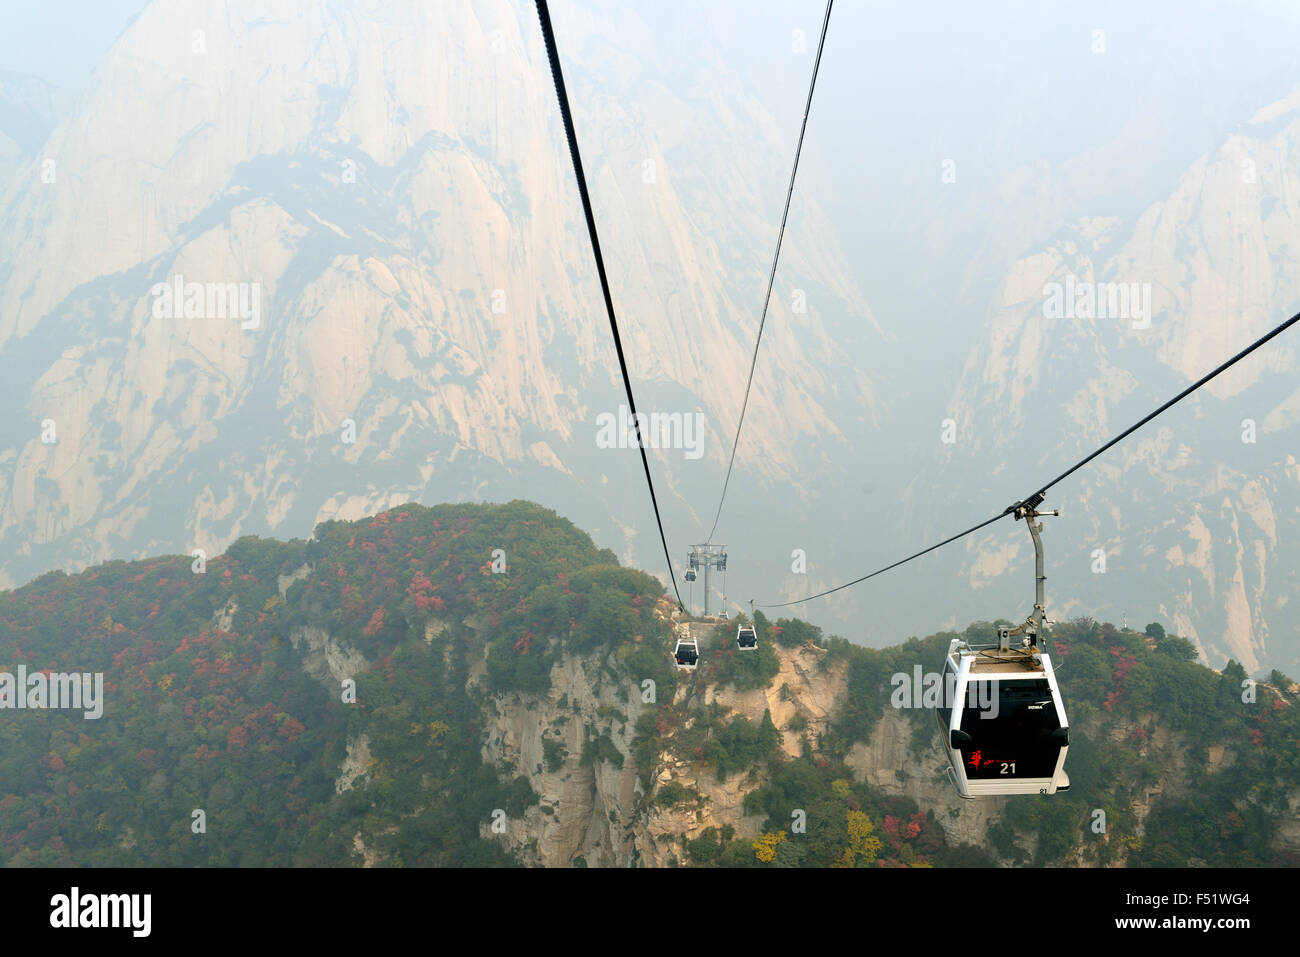 Cableway over western peak of Mount Hua in Shanxi, China. - Stock Image